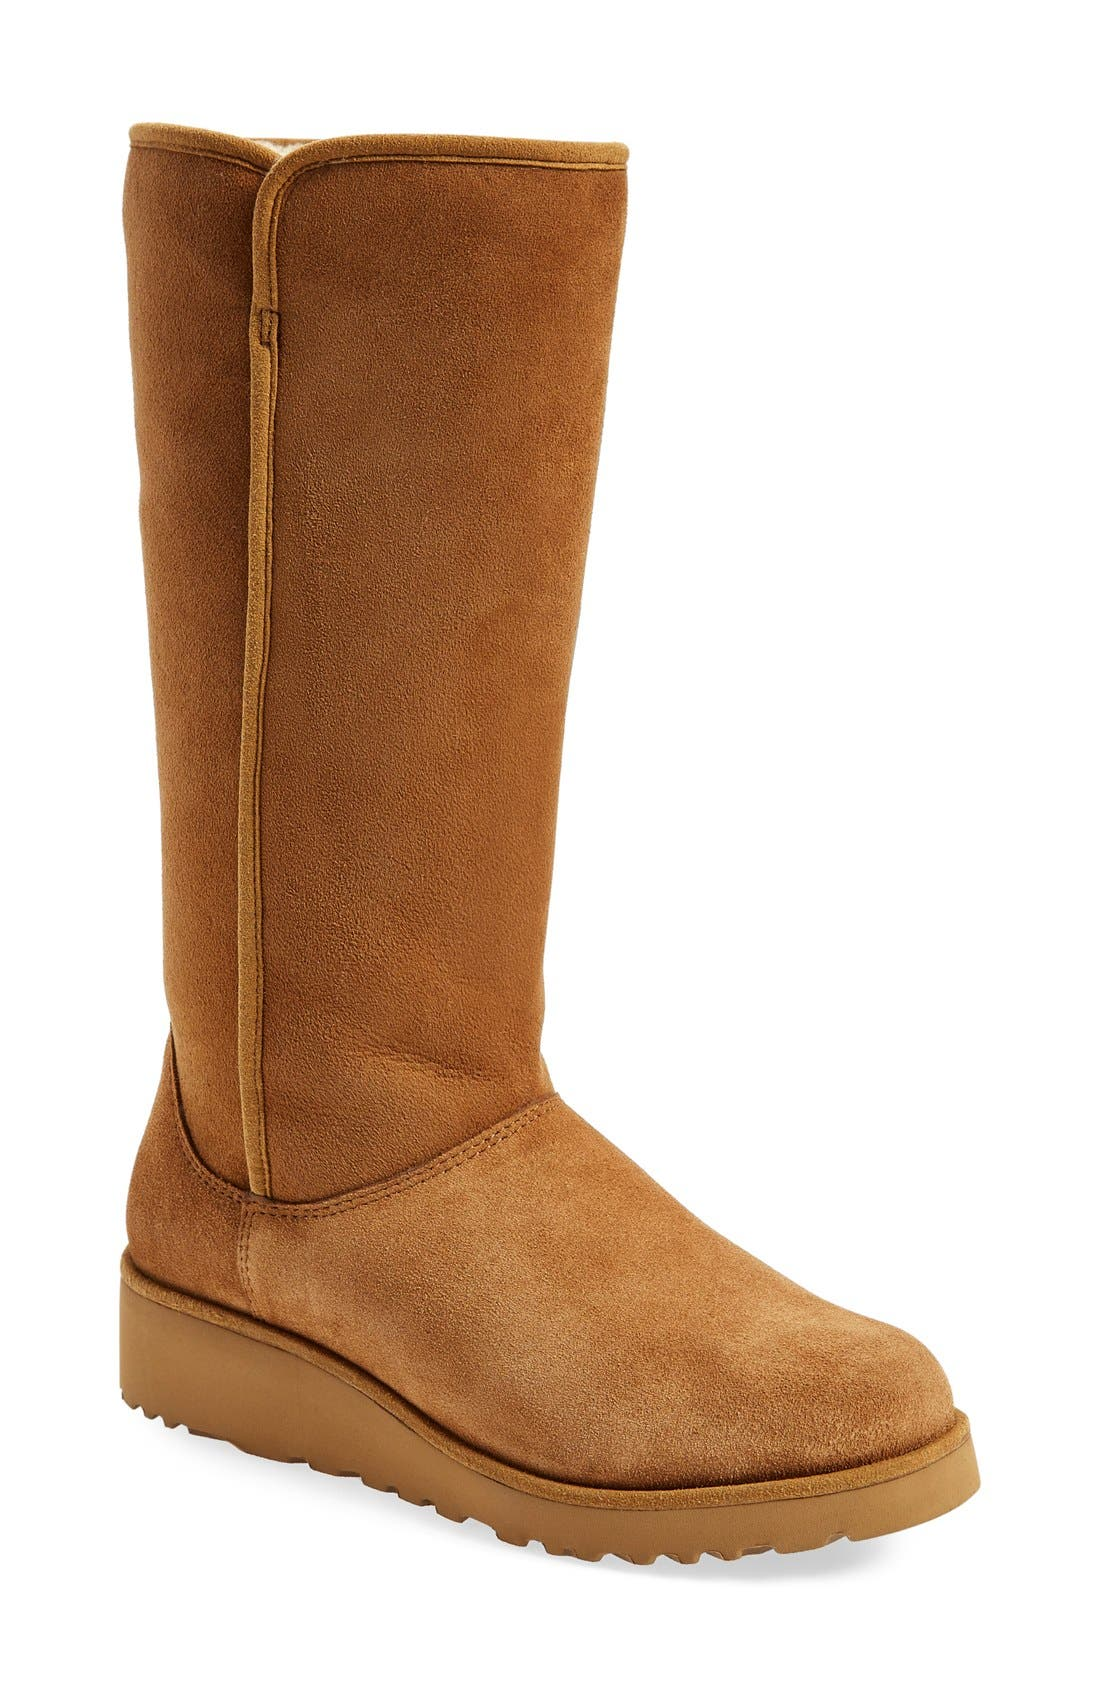 Alternate Image 1 Selected - UGG® Kara - Classic Slim™ Water Resistant Tall Boot (Women)